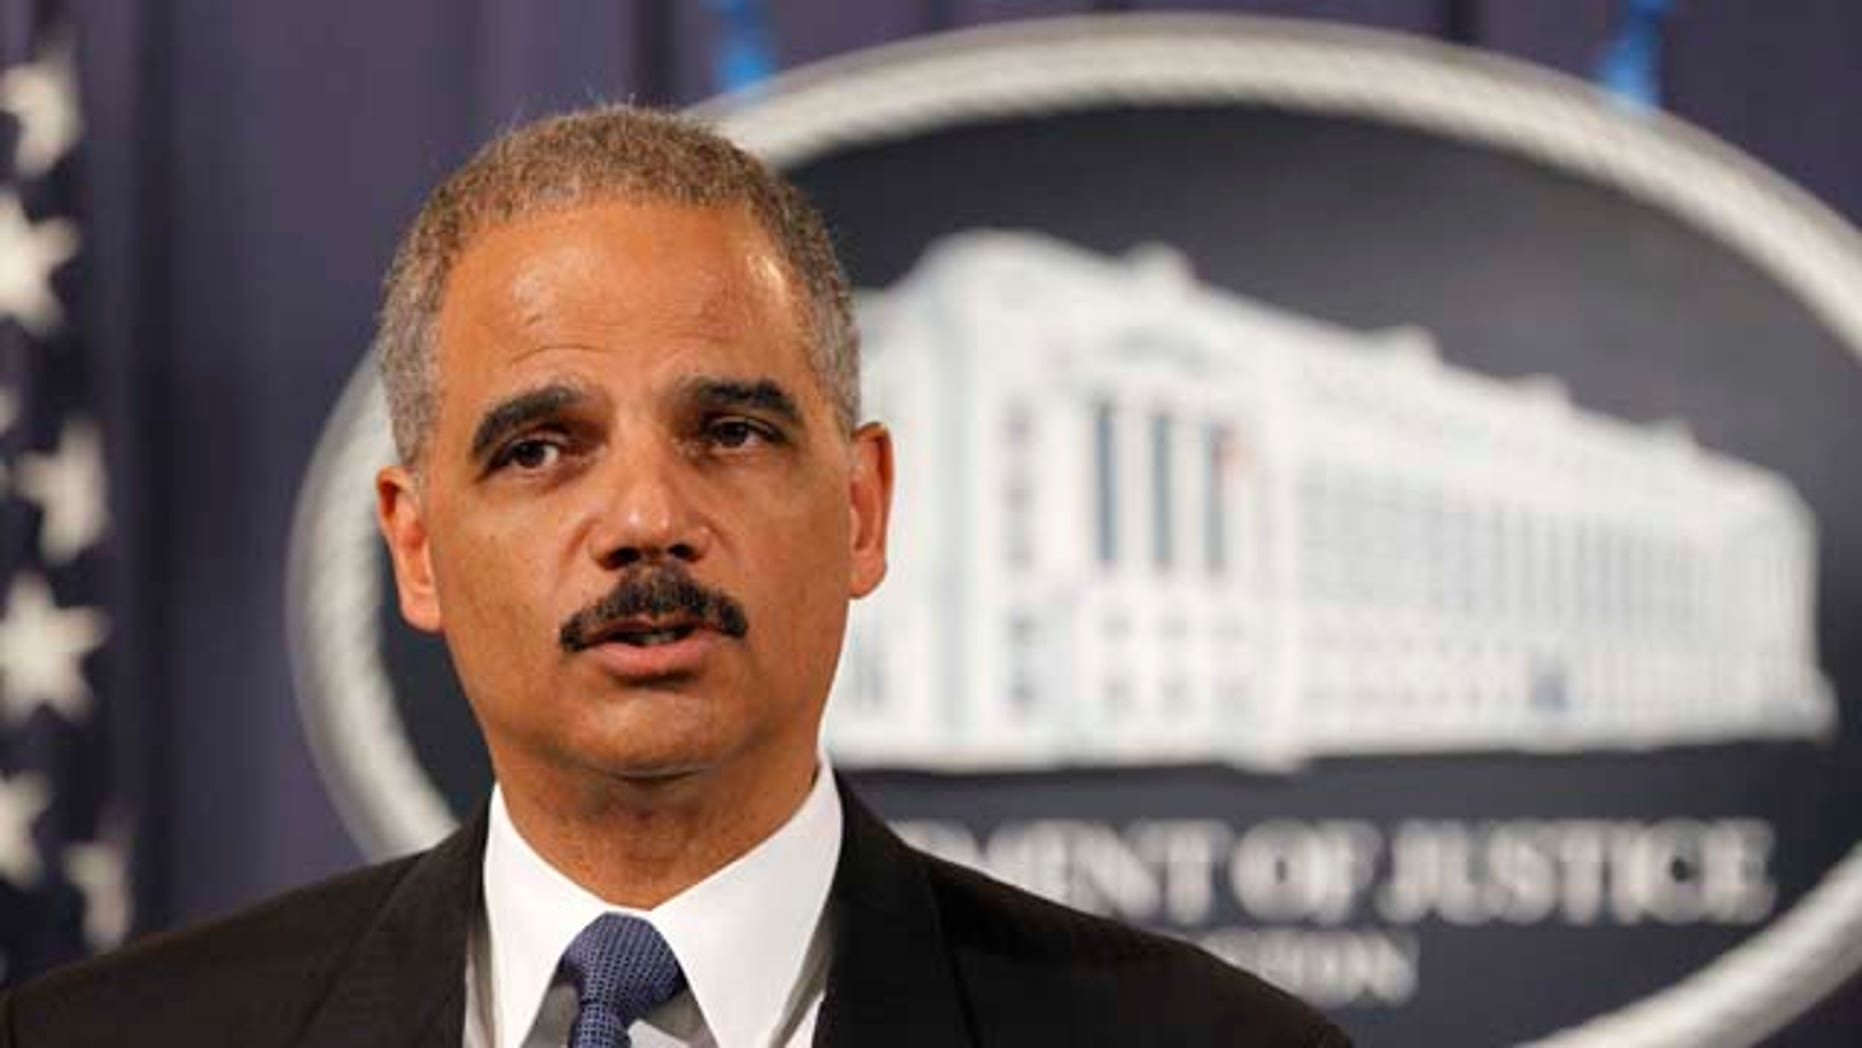 Attorney General Eric Holder speaks during a news conference at the Justice Department in Washington, Tuesday, Oct. 11, 2011. Holder announced that two individuals have been charged in New York for their alleged participation in a plot directed by elements of the Iranian government to murder the Saudi Ambassador to the United States with explosives while the ambassador was in the United States. (AP Photo/Haraz N. Ghanbari)